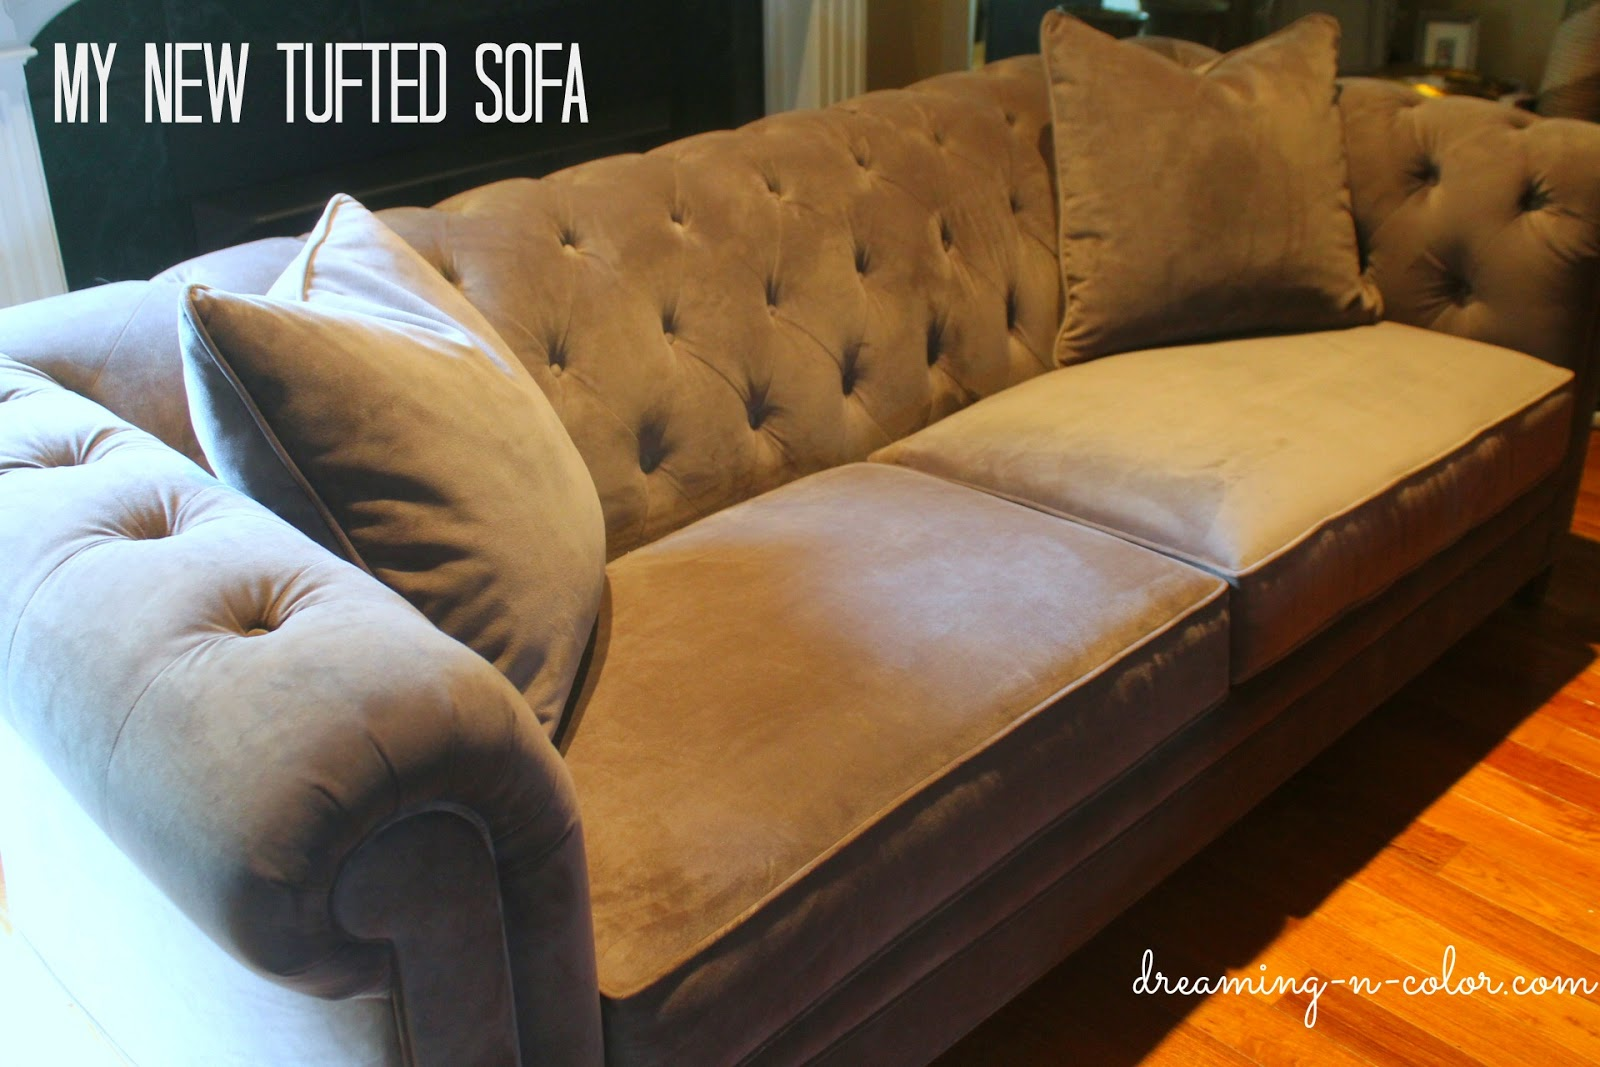 I Had Been Searching For A Sofa Like This For Awhile. Then One Day My  Sister Tells Me She Found A Sofa She Wanted For Her Living Room.